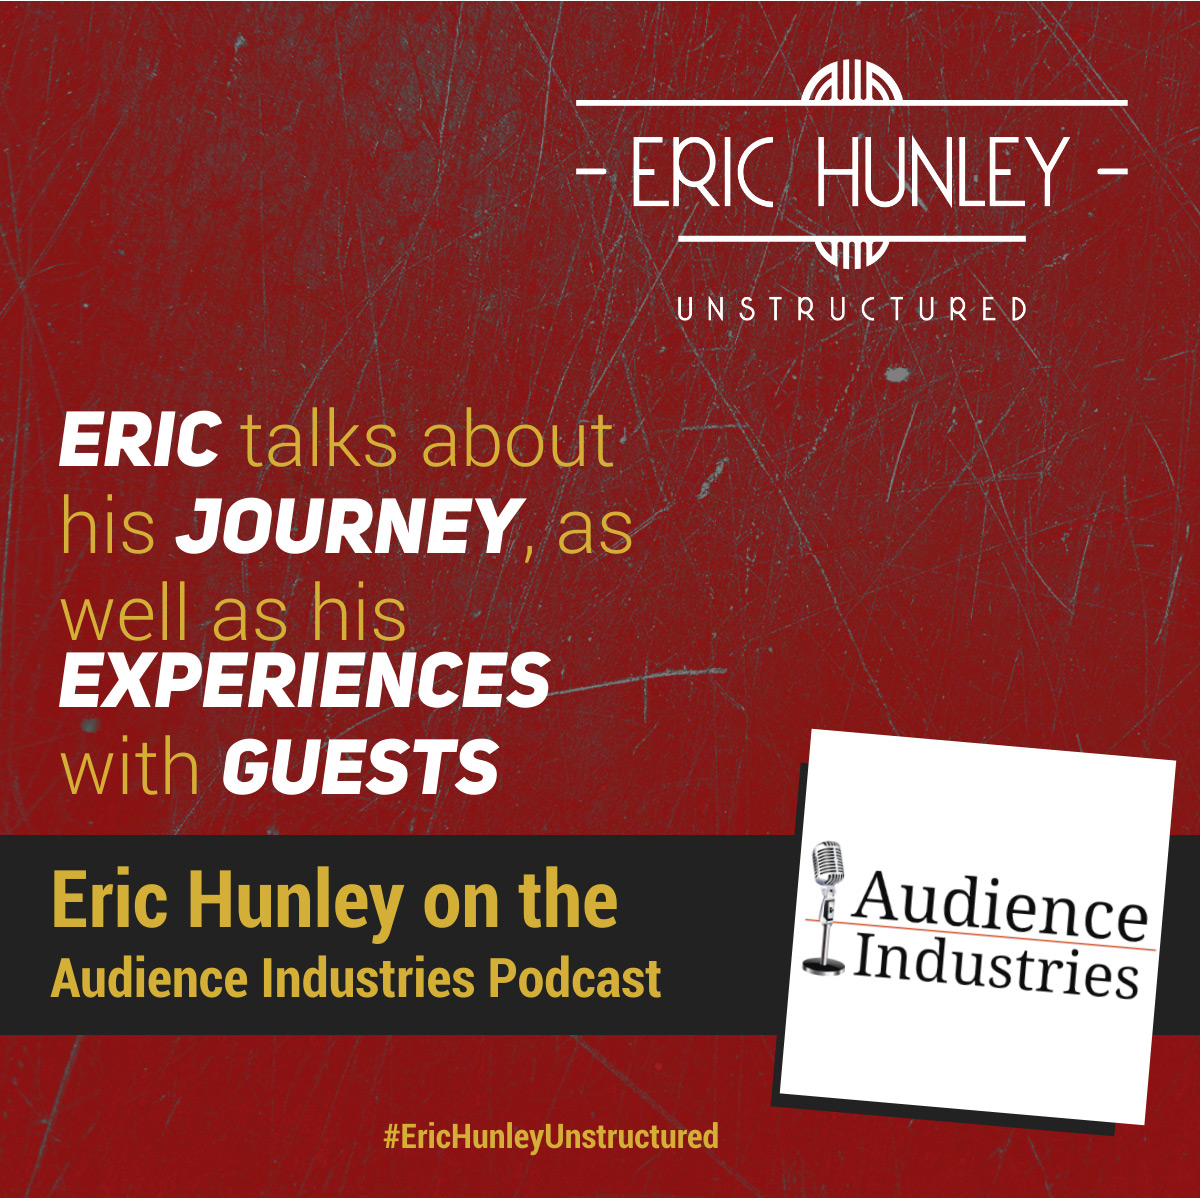 Eric Hunley Podcast Appearance Interviews - Audience Industries Podcast Square Post